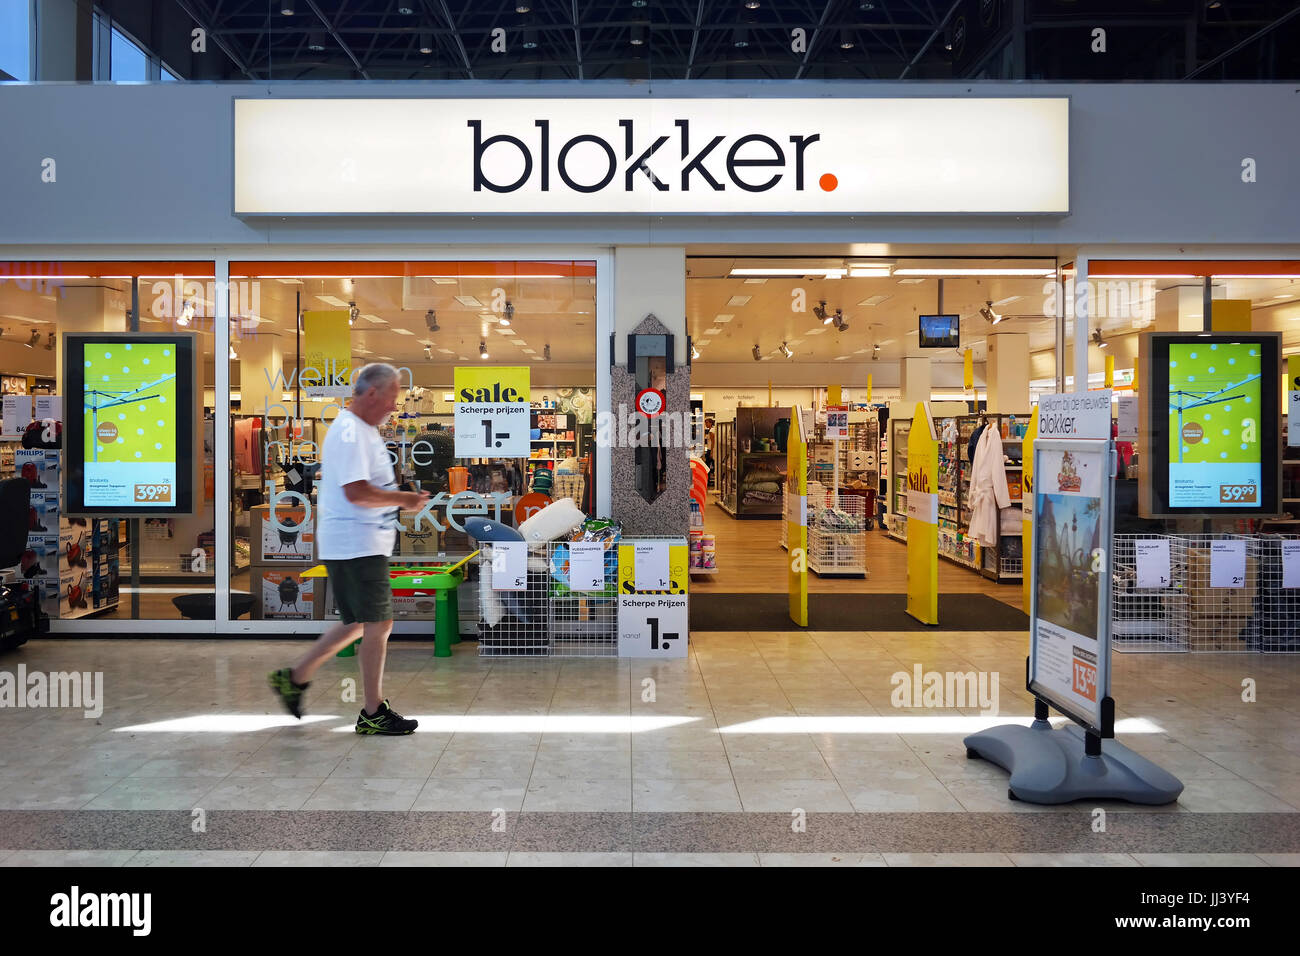 Renewed corporate identity of a Blokker store. - Stock Image